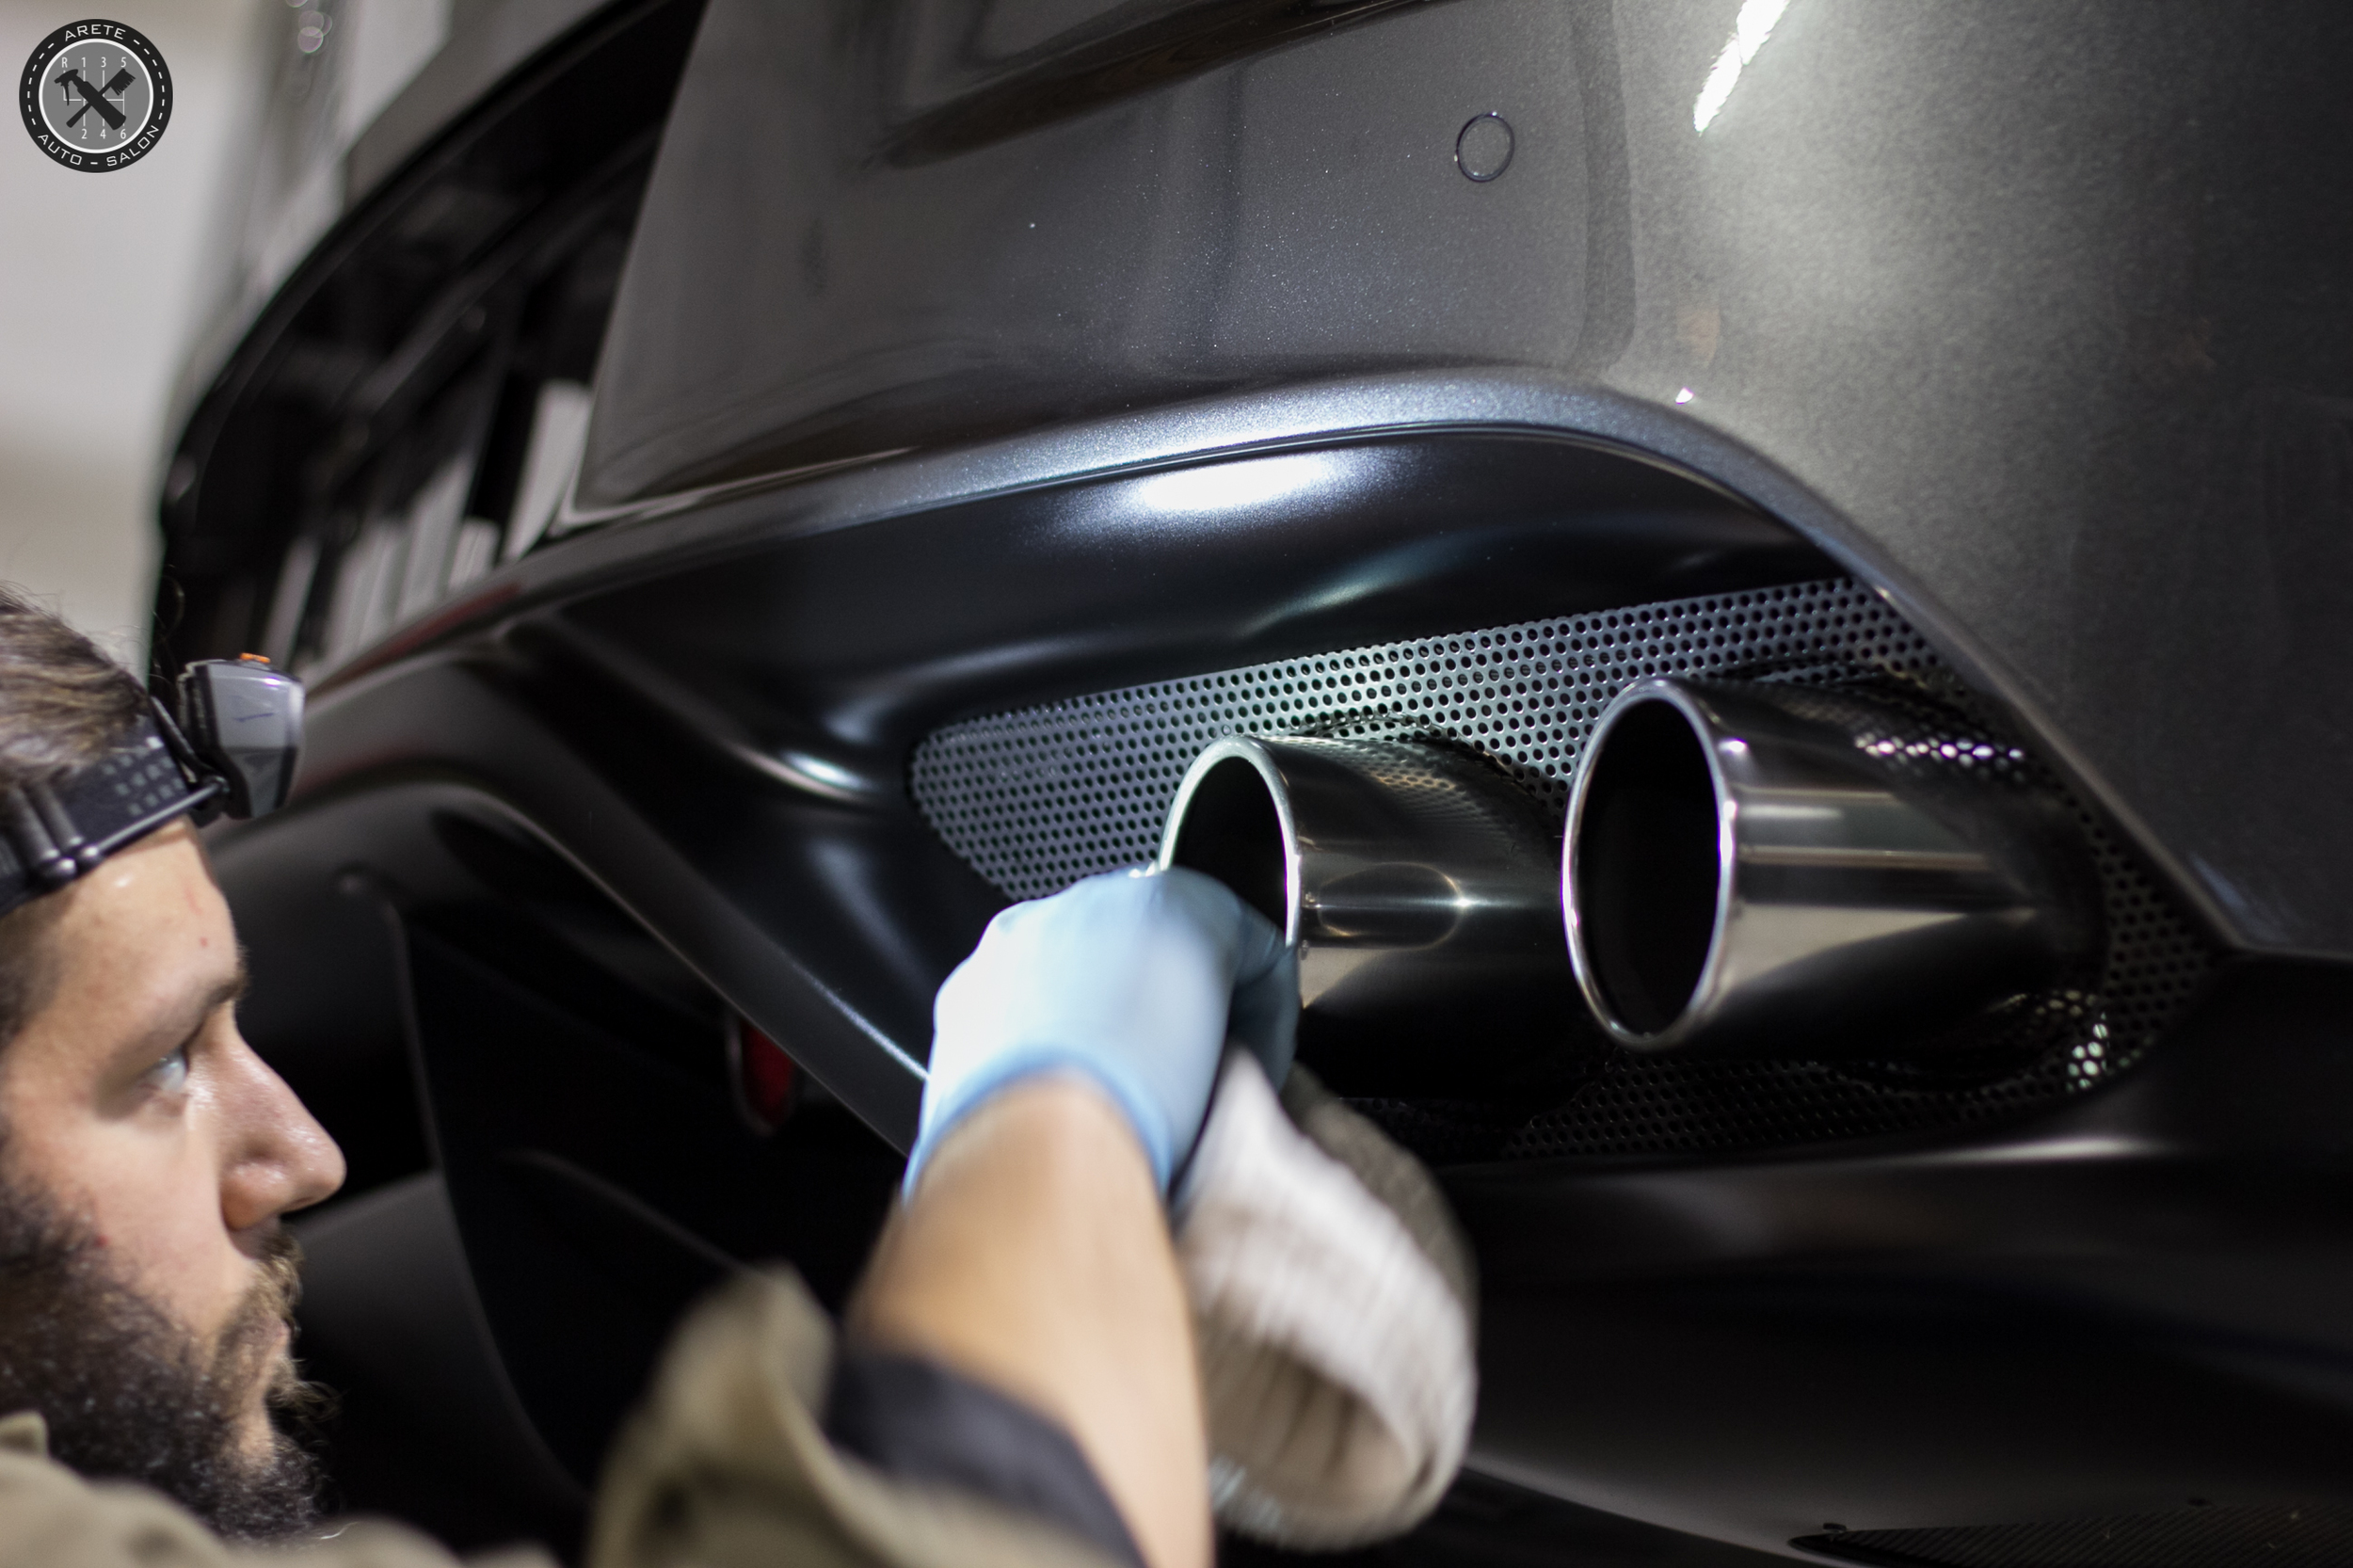 Our lead detailer polishing the exhaust tips.